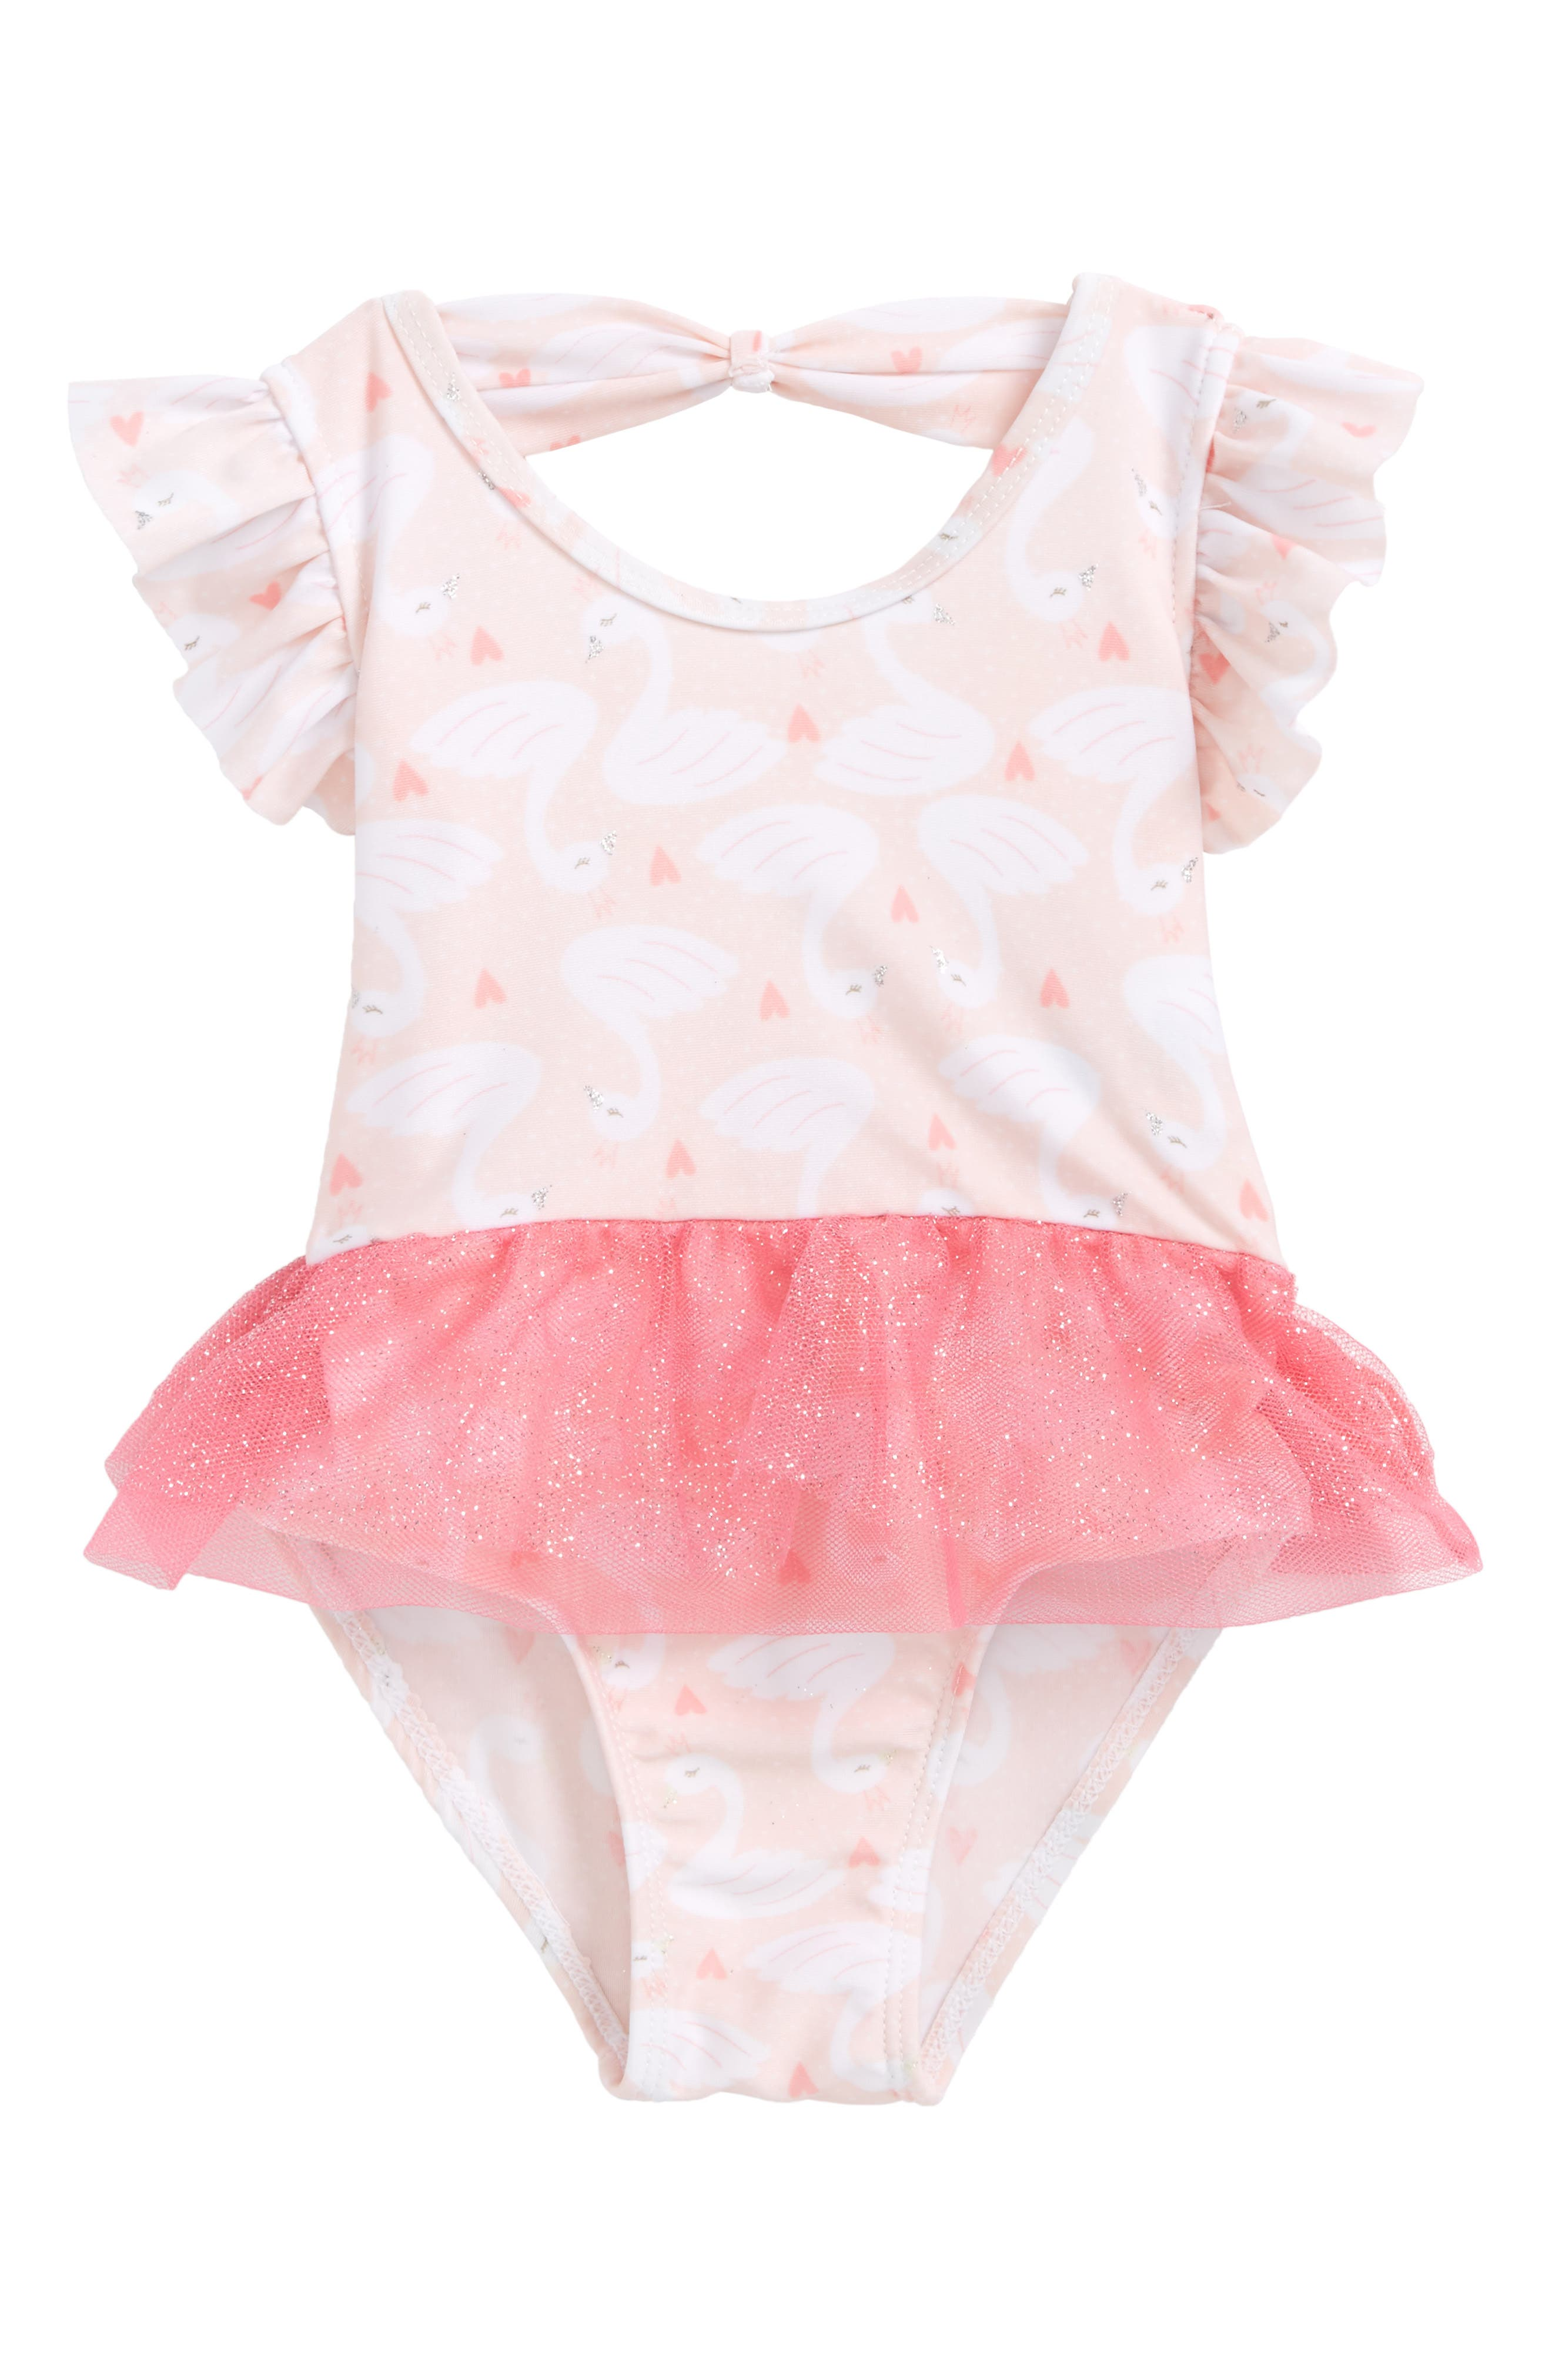 Princess Swan One-Piece Swimsuit,                         Main,                         color, 650